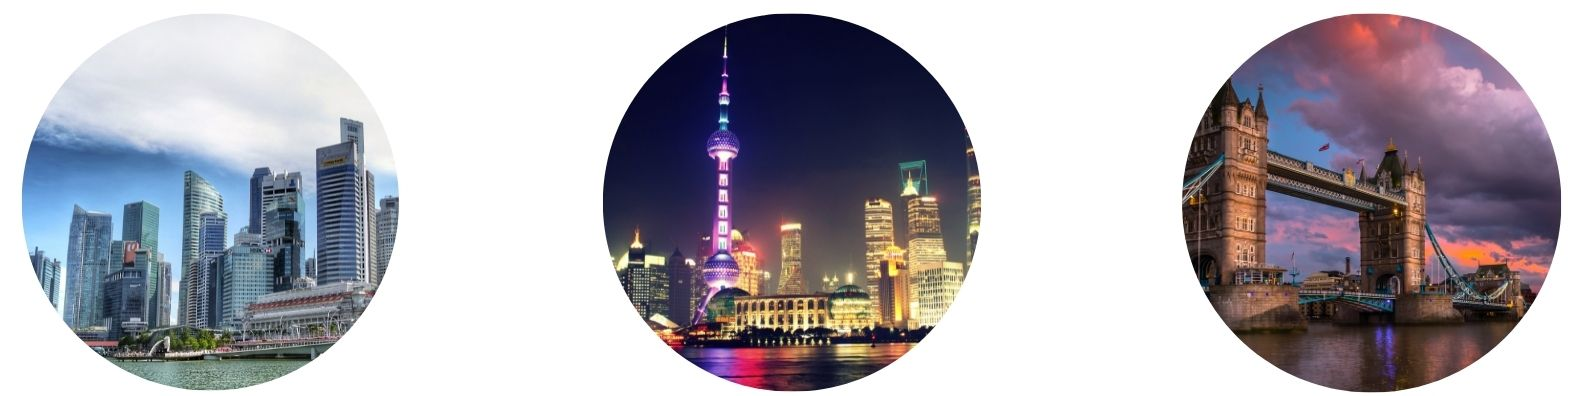 join our team in Asia, China and Europe & the Middle East